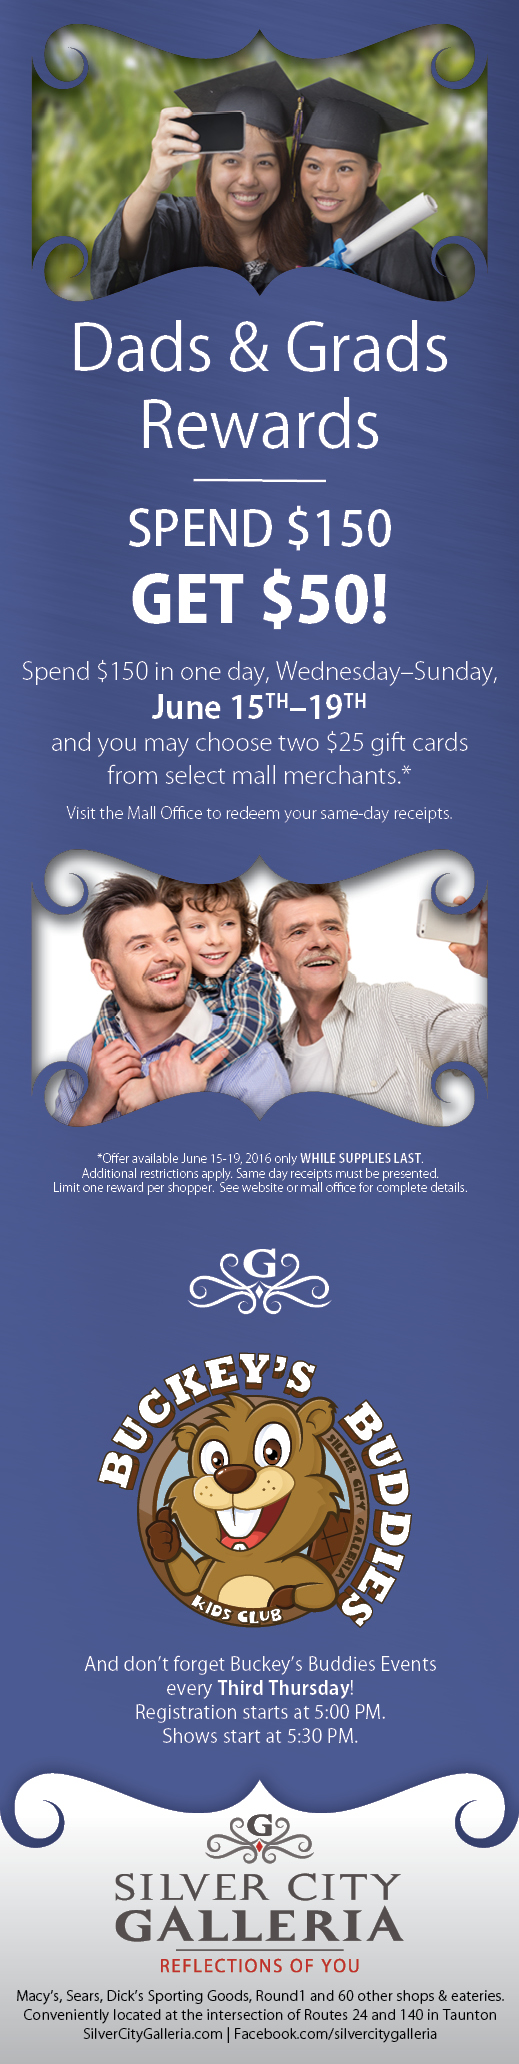 Dads and Grads 1/2 Page Ad Design for Silver City Galleria by Cybergraph®